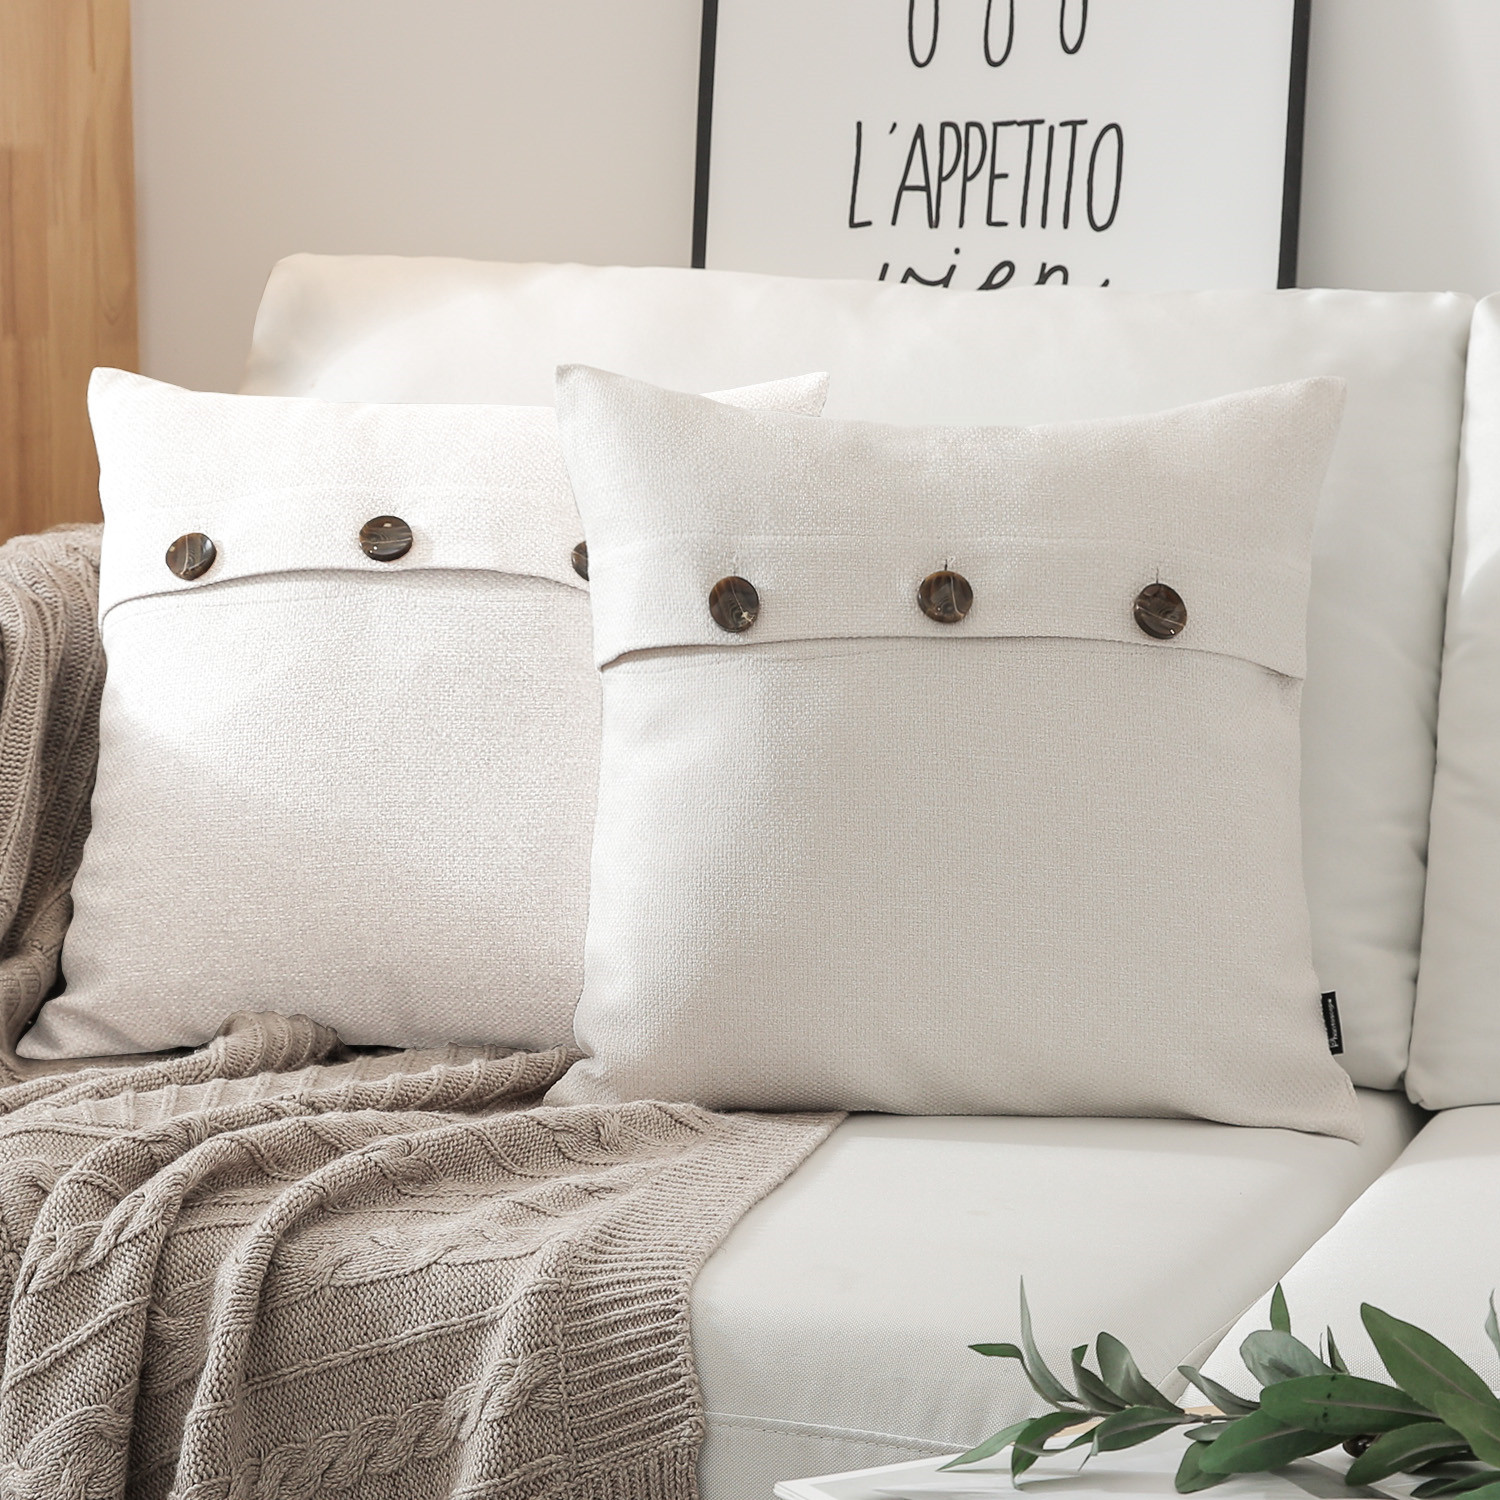 phantoscope triple buttons cotton blend series farmhouse square decorative throw pillow cusion for couch 18 x 18 off white 2 pack